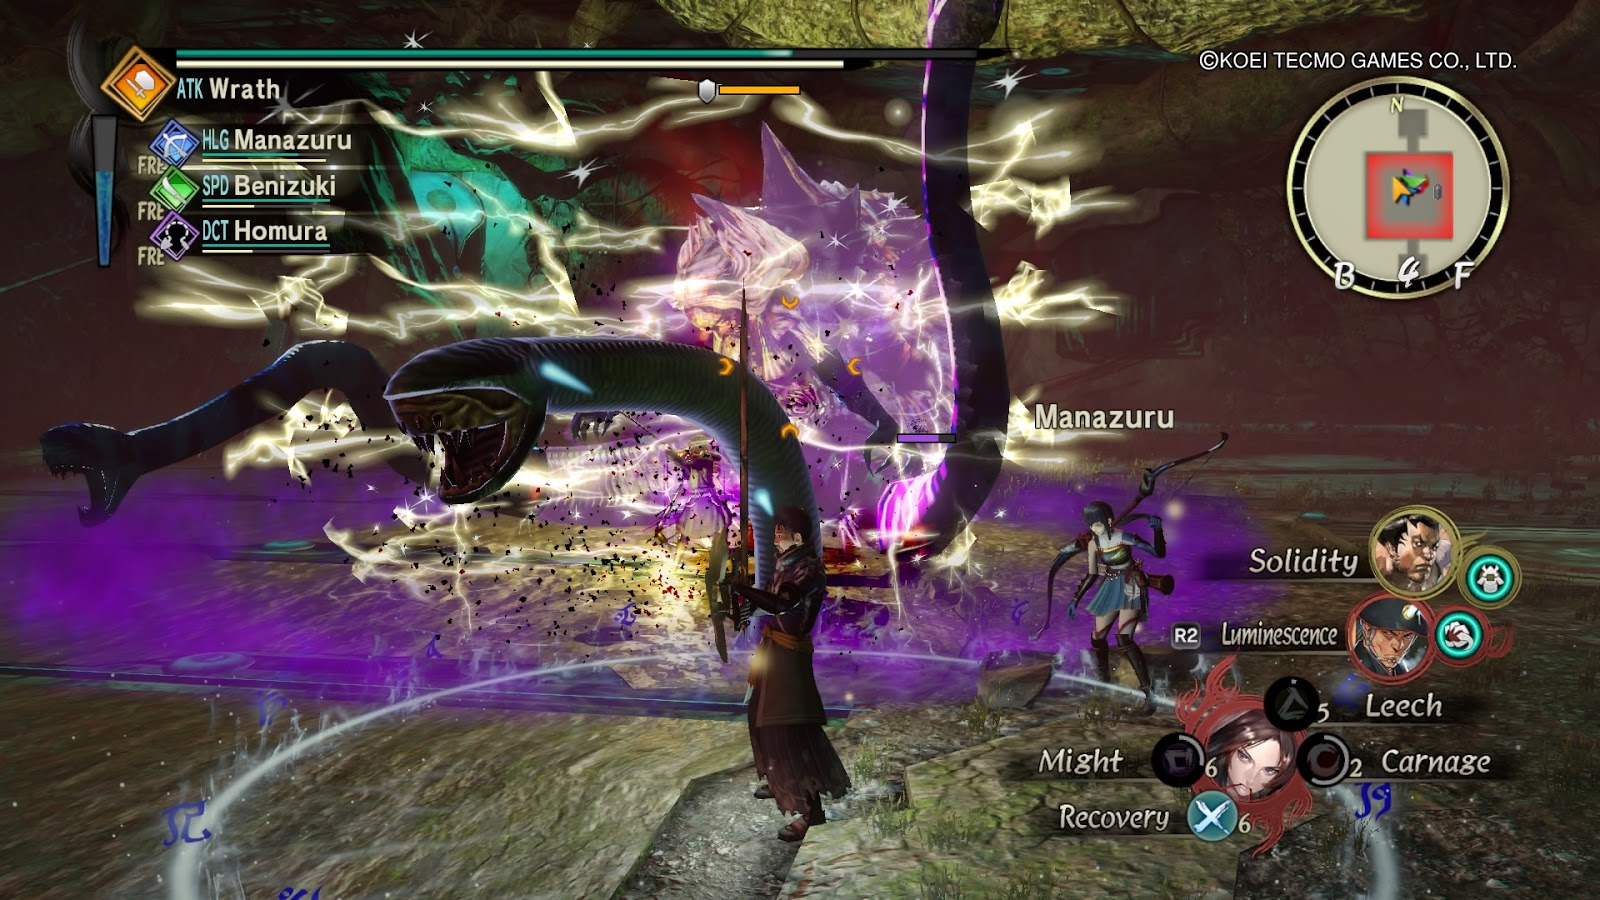 How To Set Up Room On Toukiden